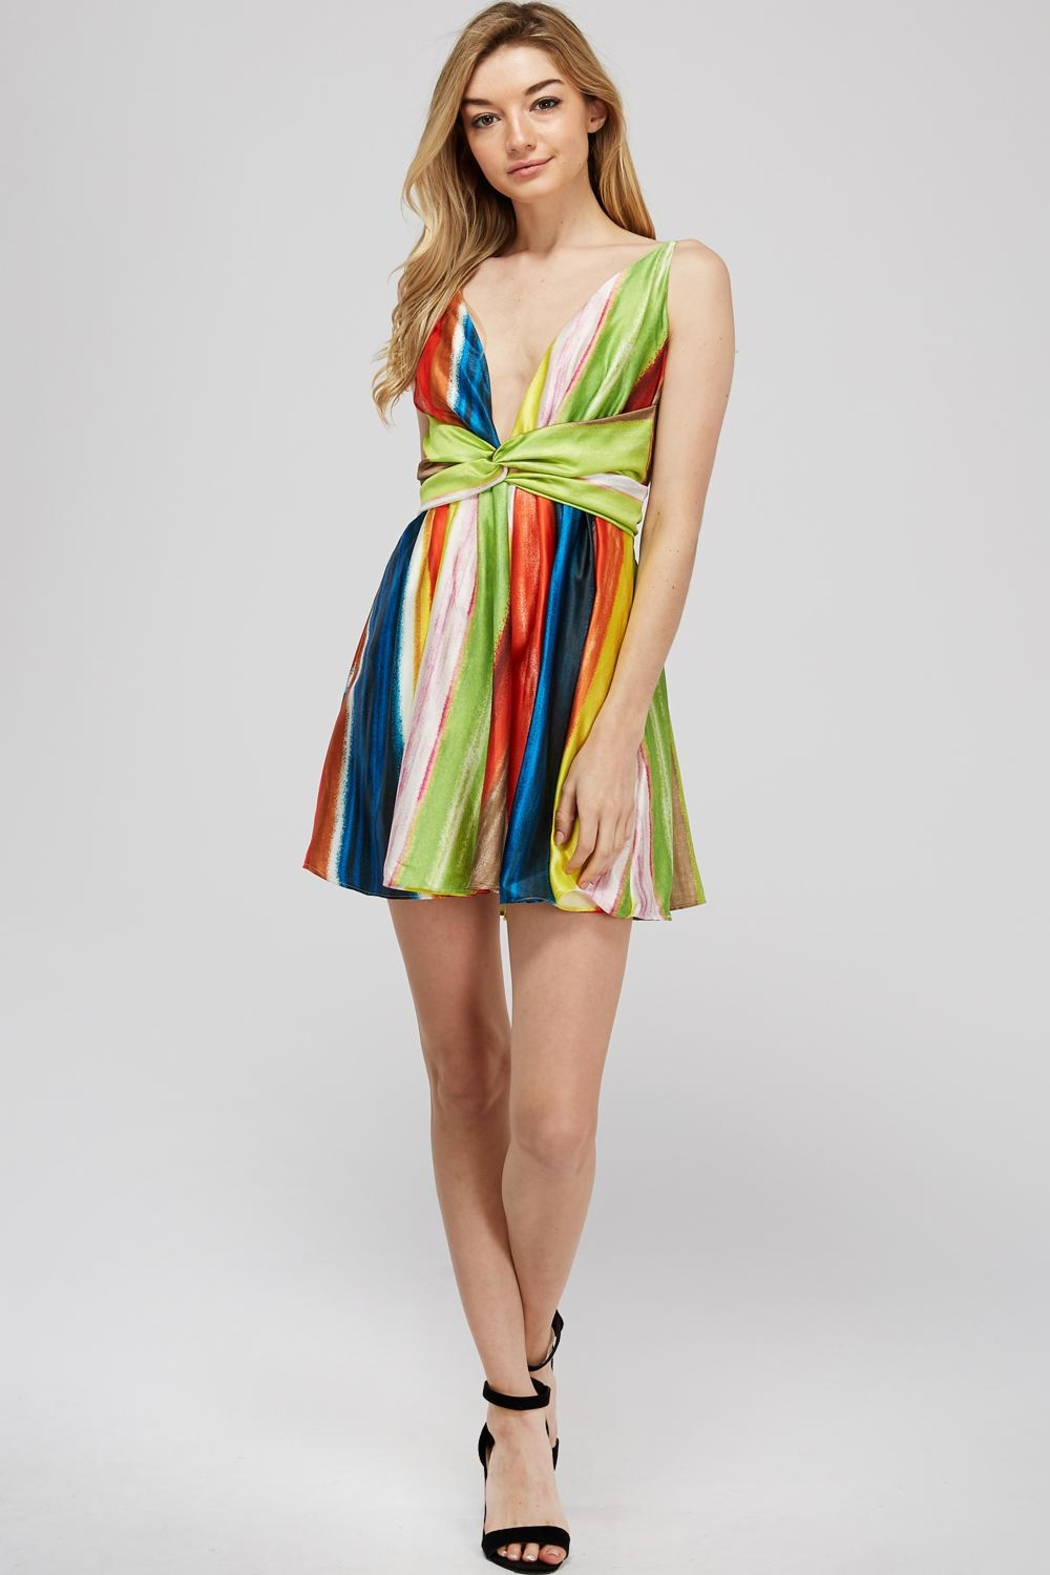 luxxel Rainbow Twist Dress - Main Image